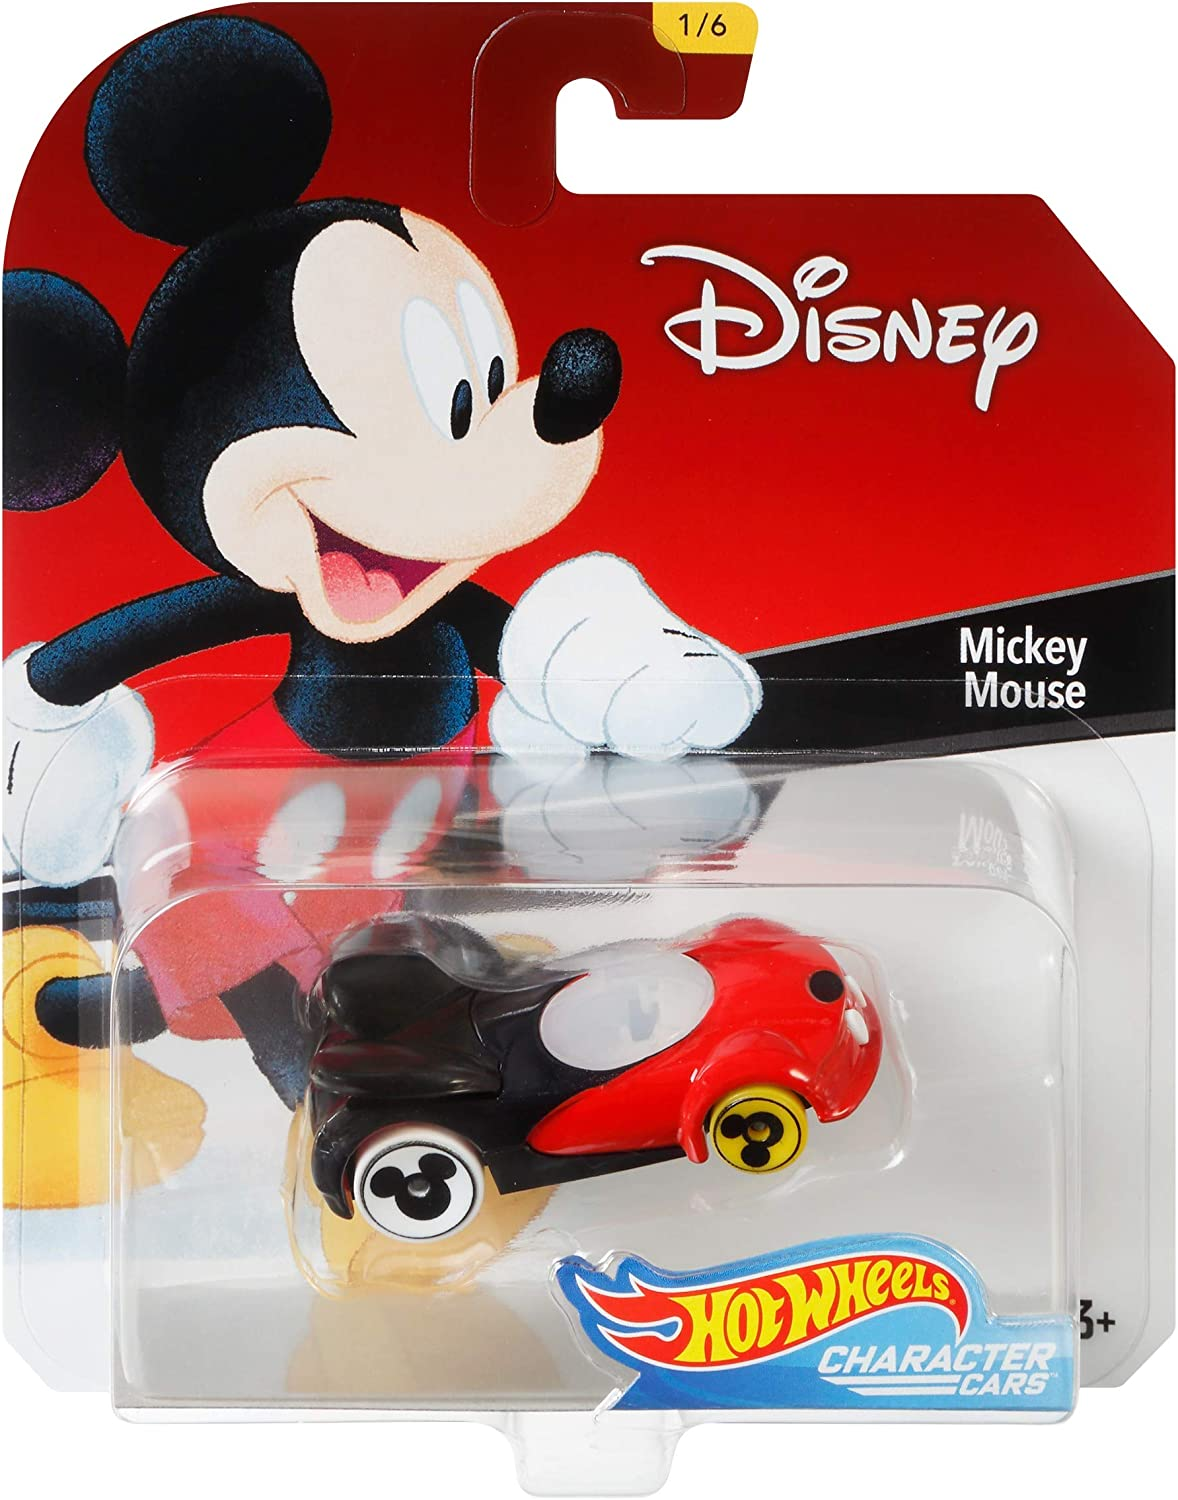 Hot Wheels Disney 90th Anniversary Mickey Mouse 4-Pack Collectible Set